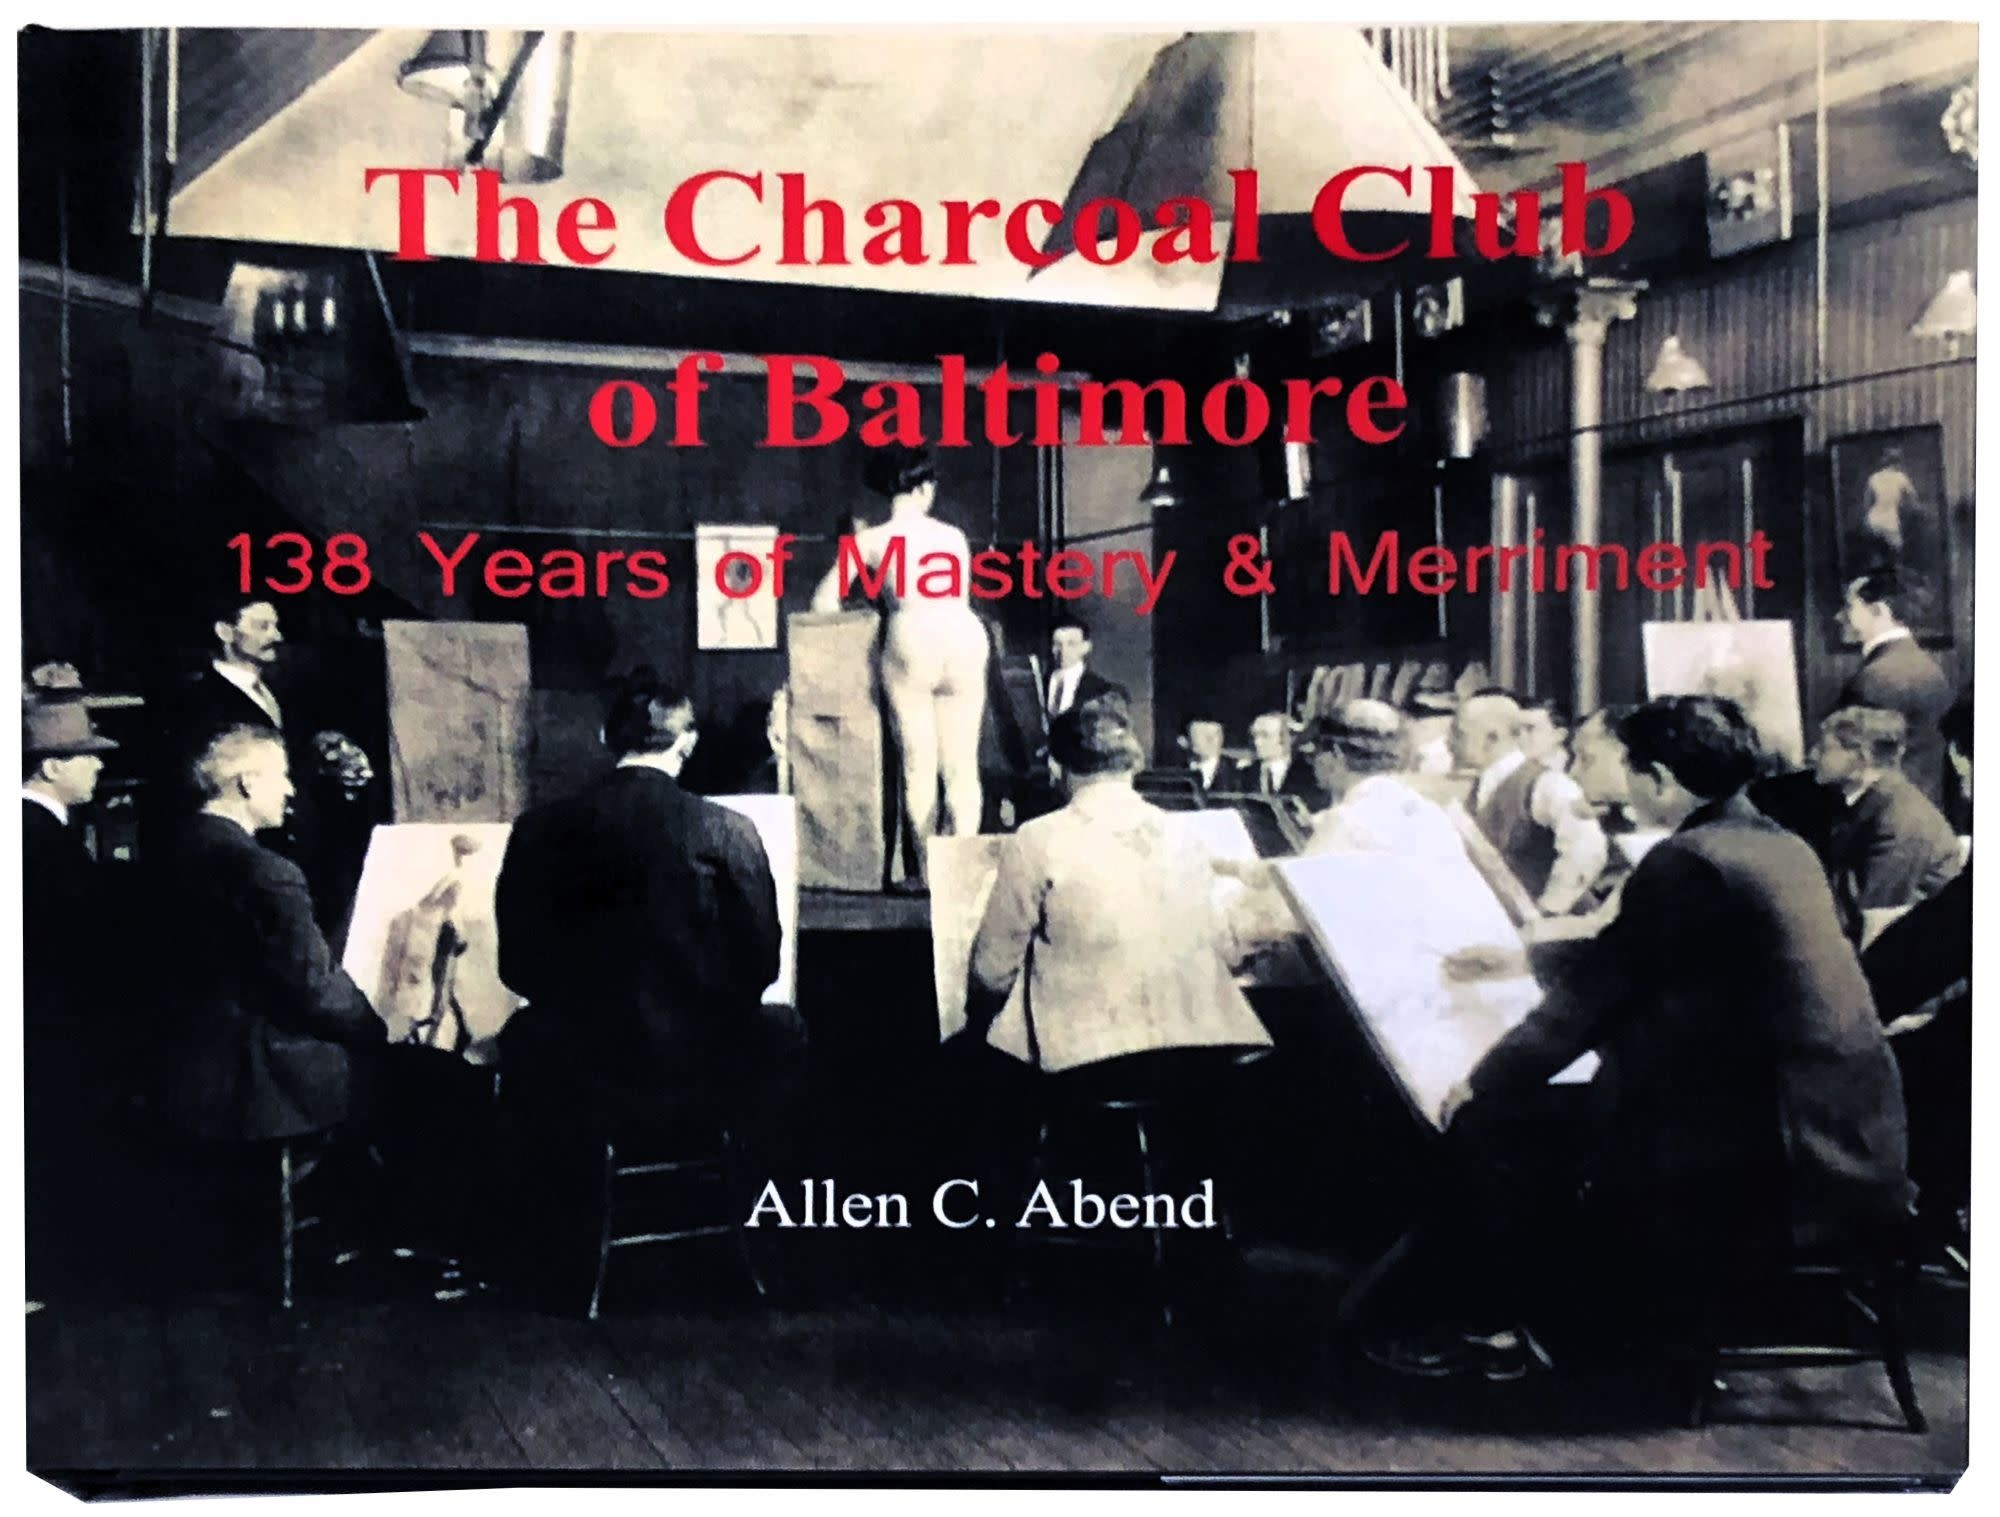 The Charcoal Club of Baltimore by Allen Abend